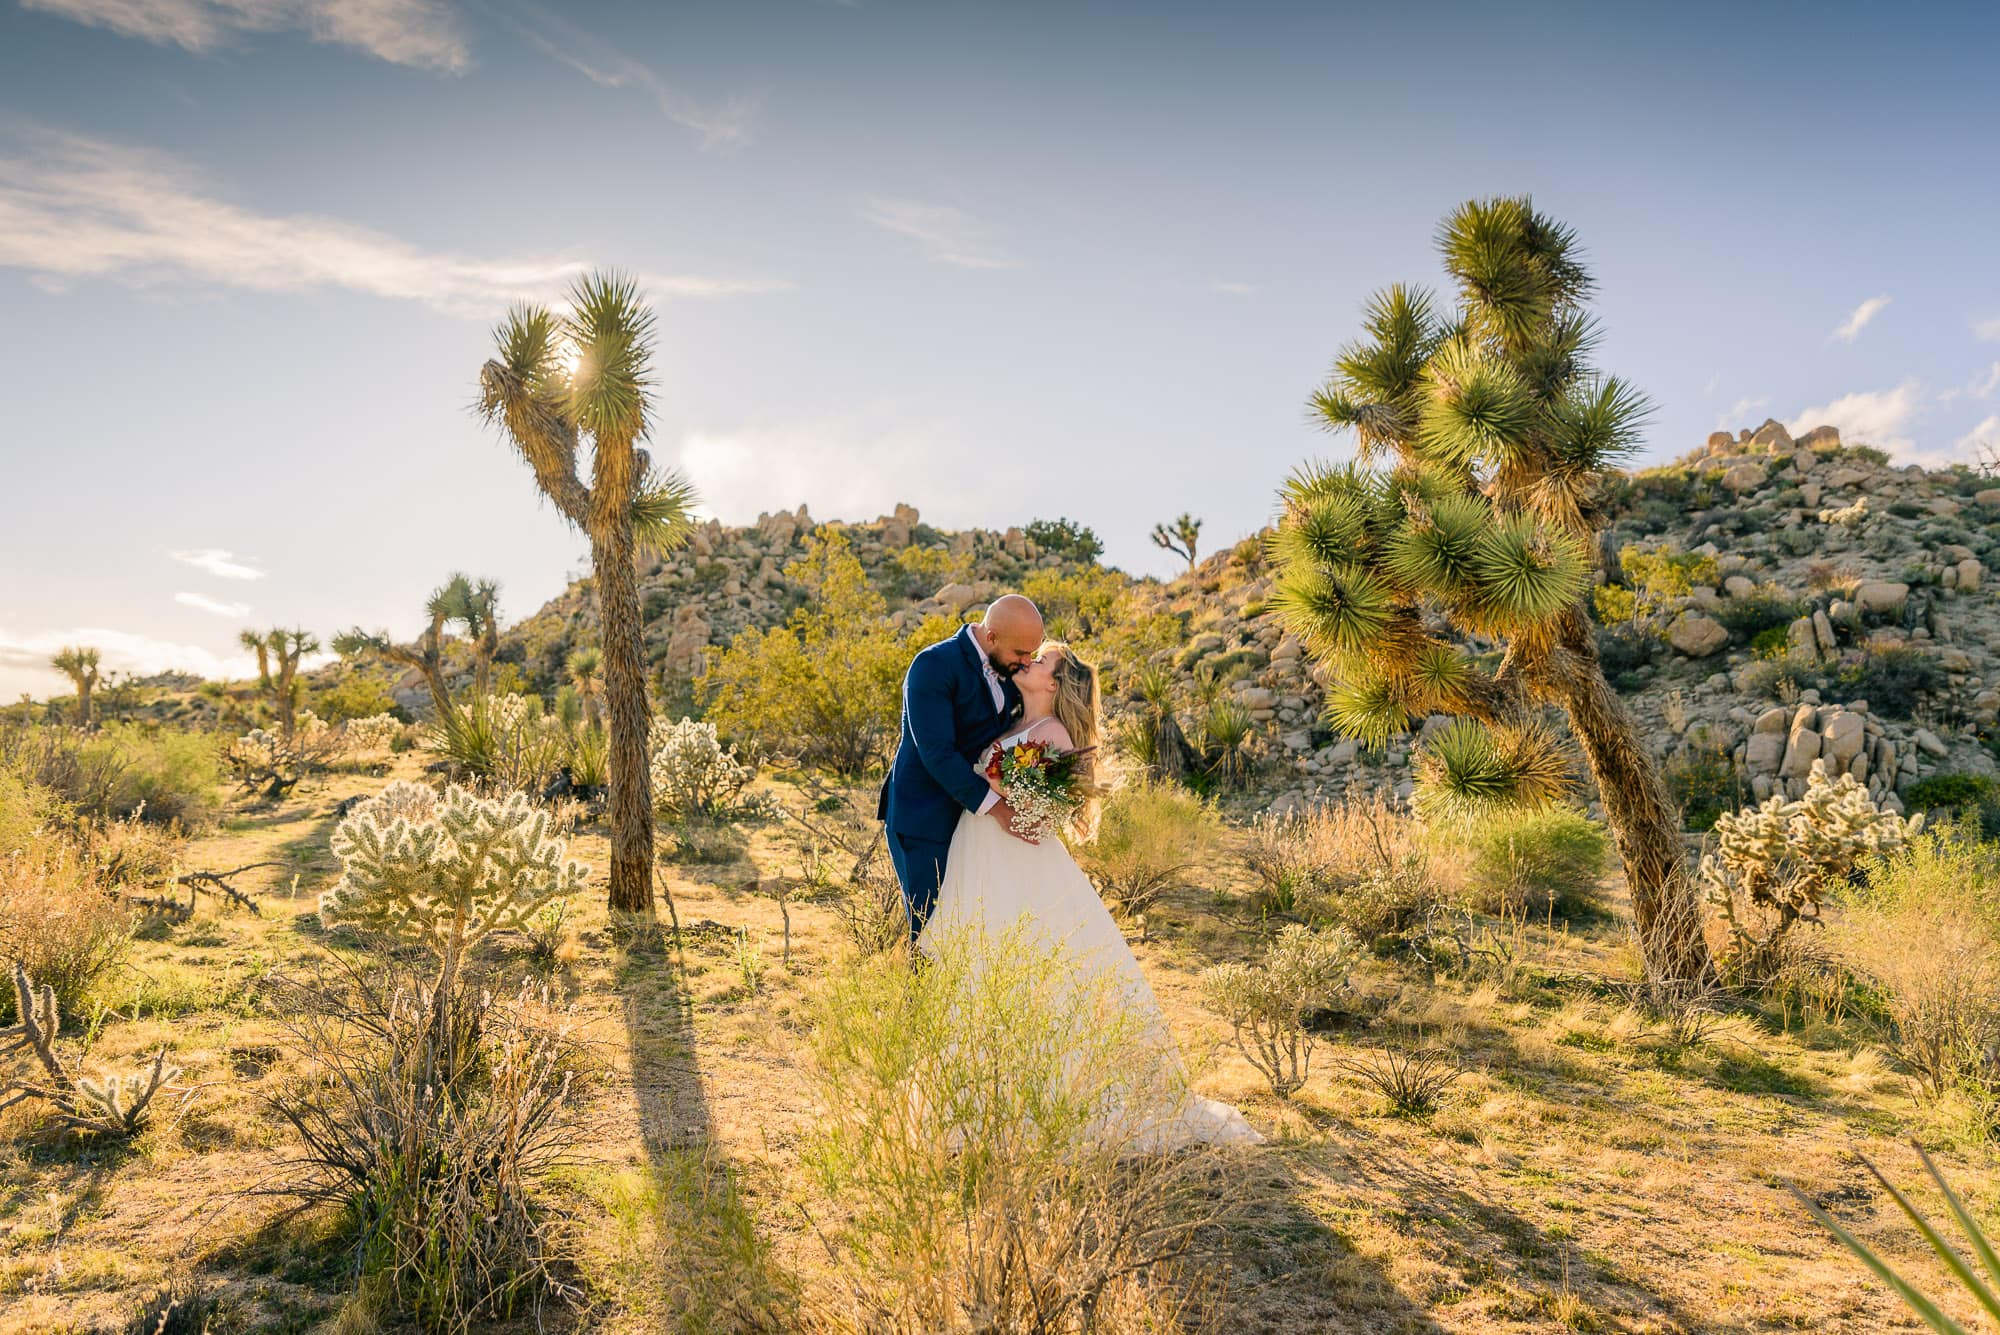 041_Alan_and_Heidi_Joshua_Tree_Spring_Elopement